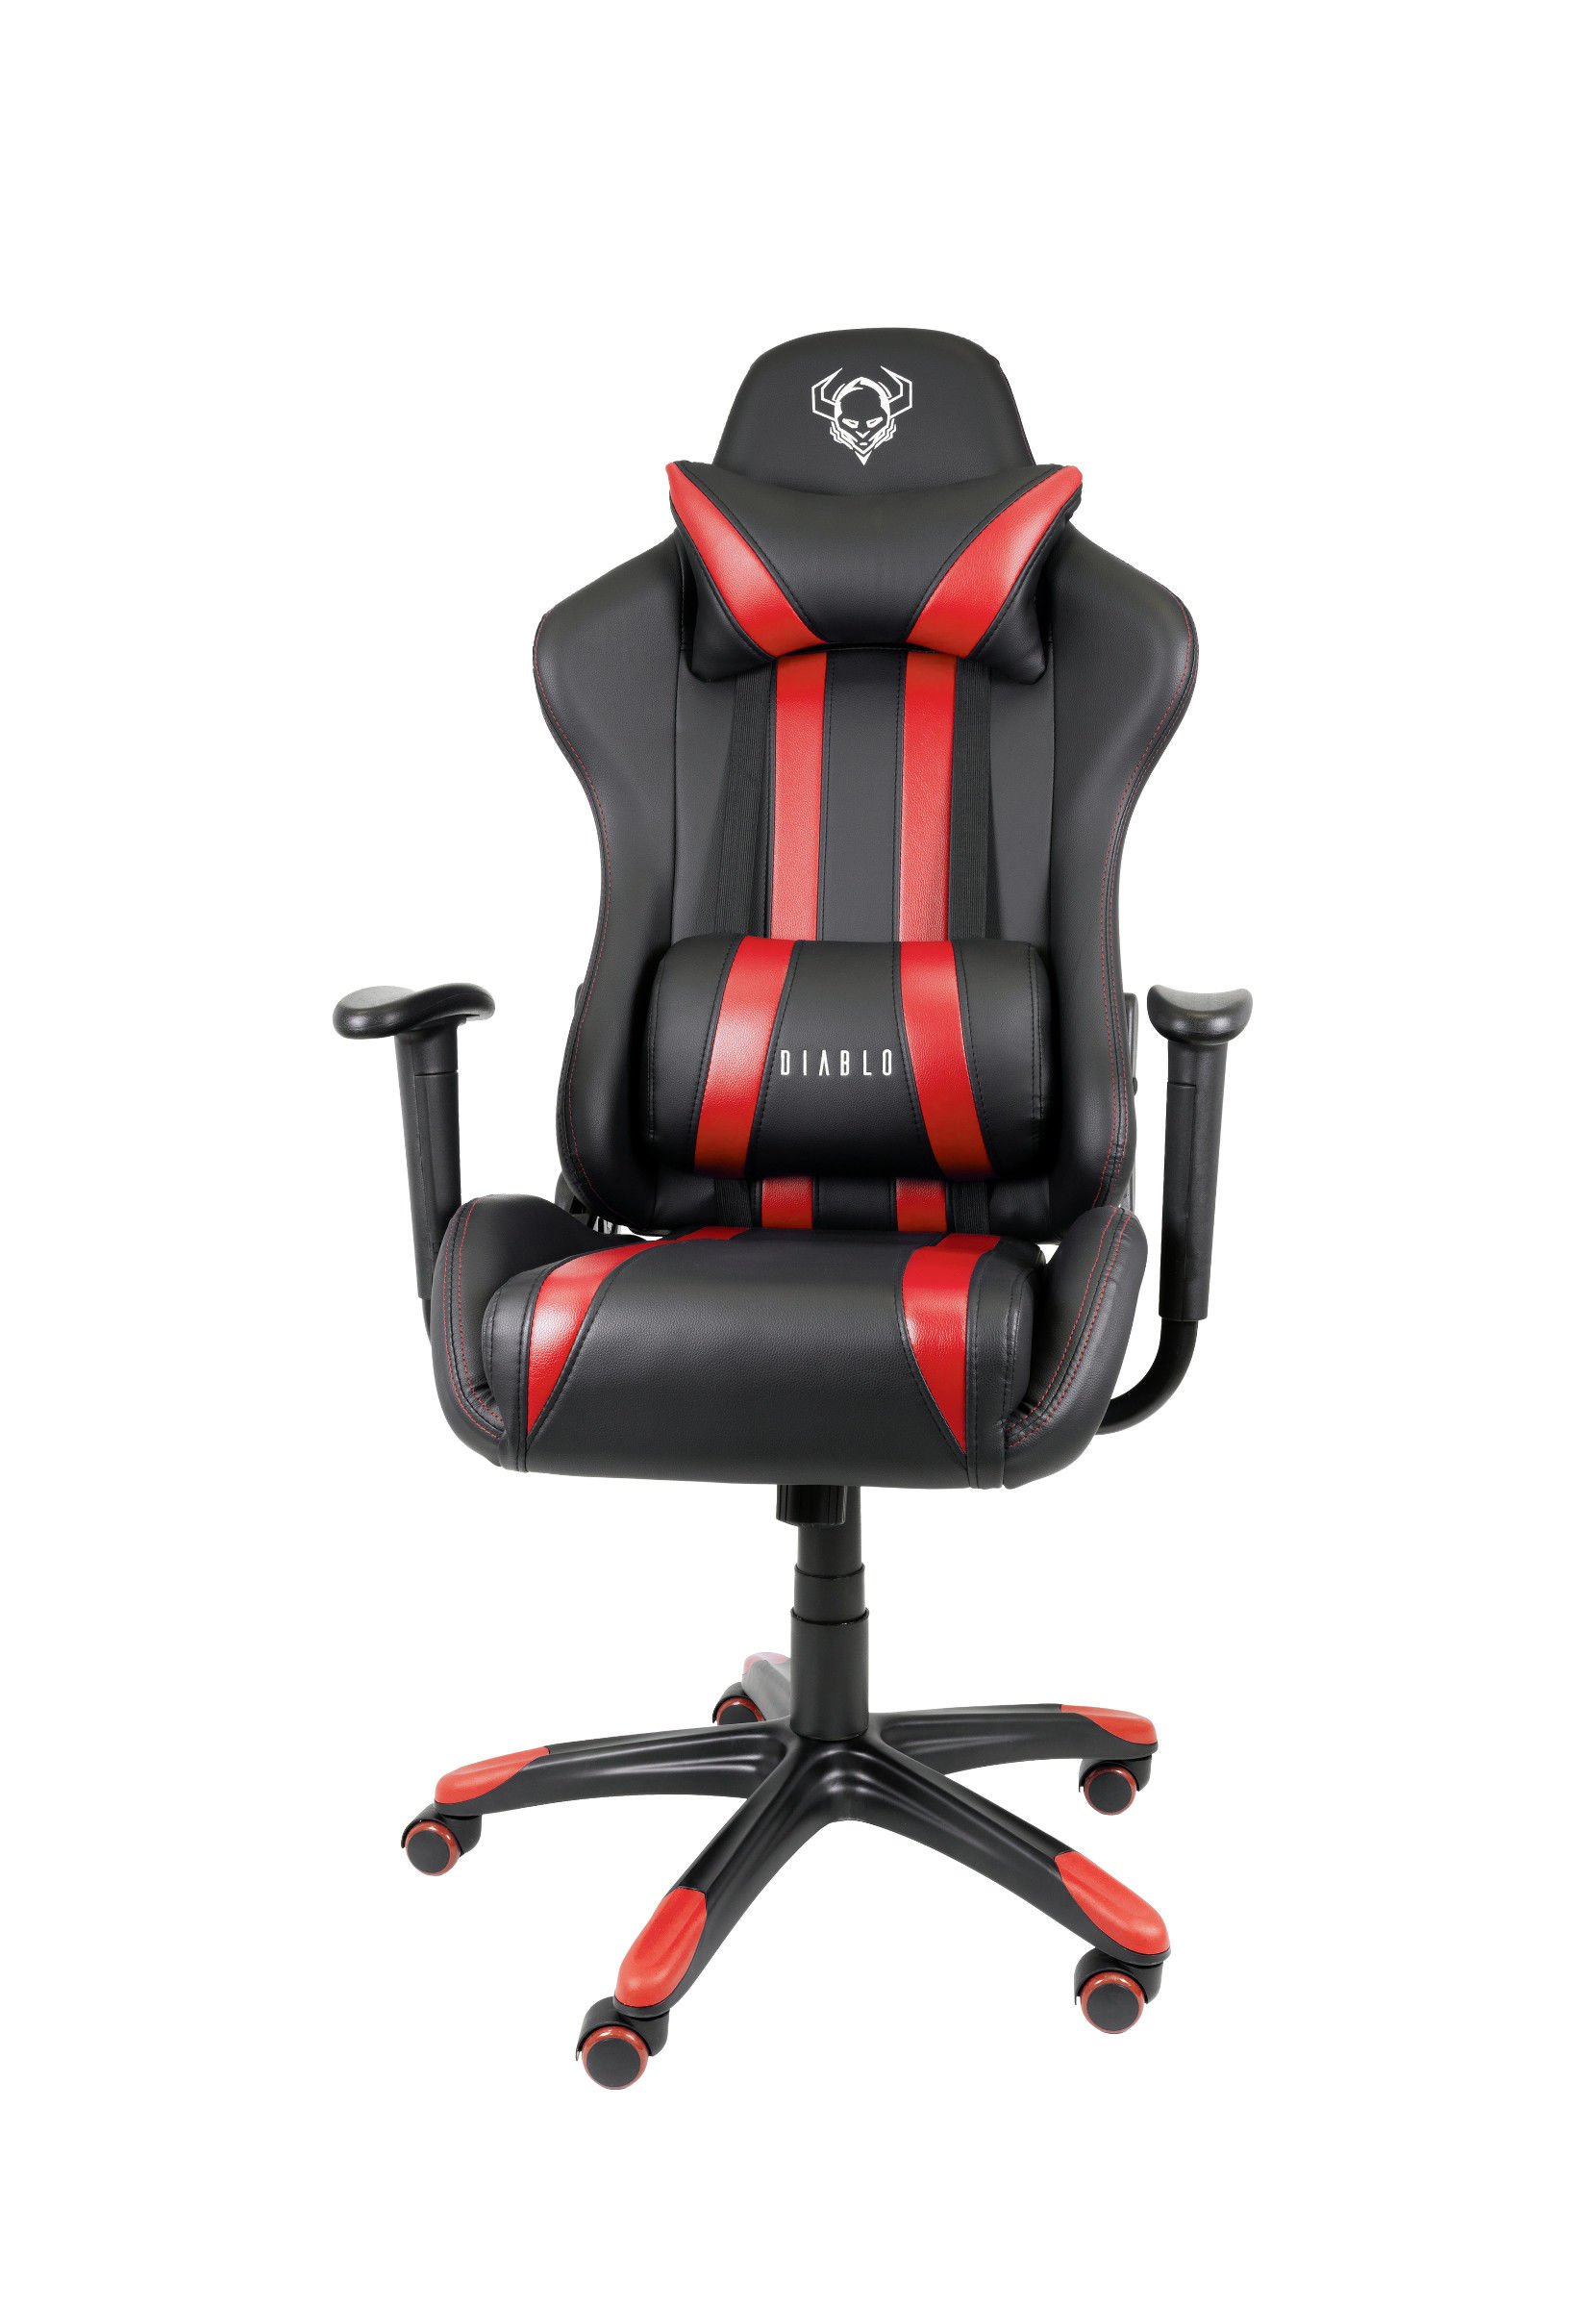 Diablo X One Black And Red Gaming Armchair